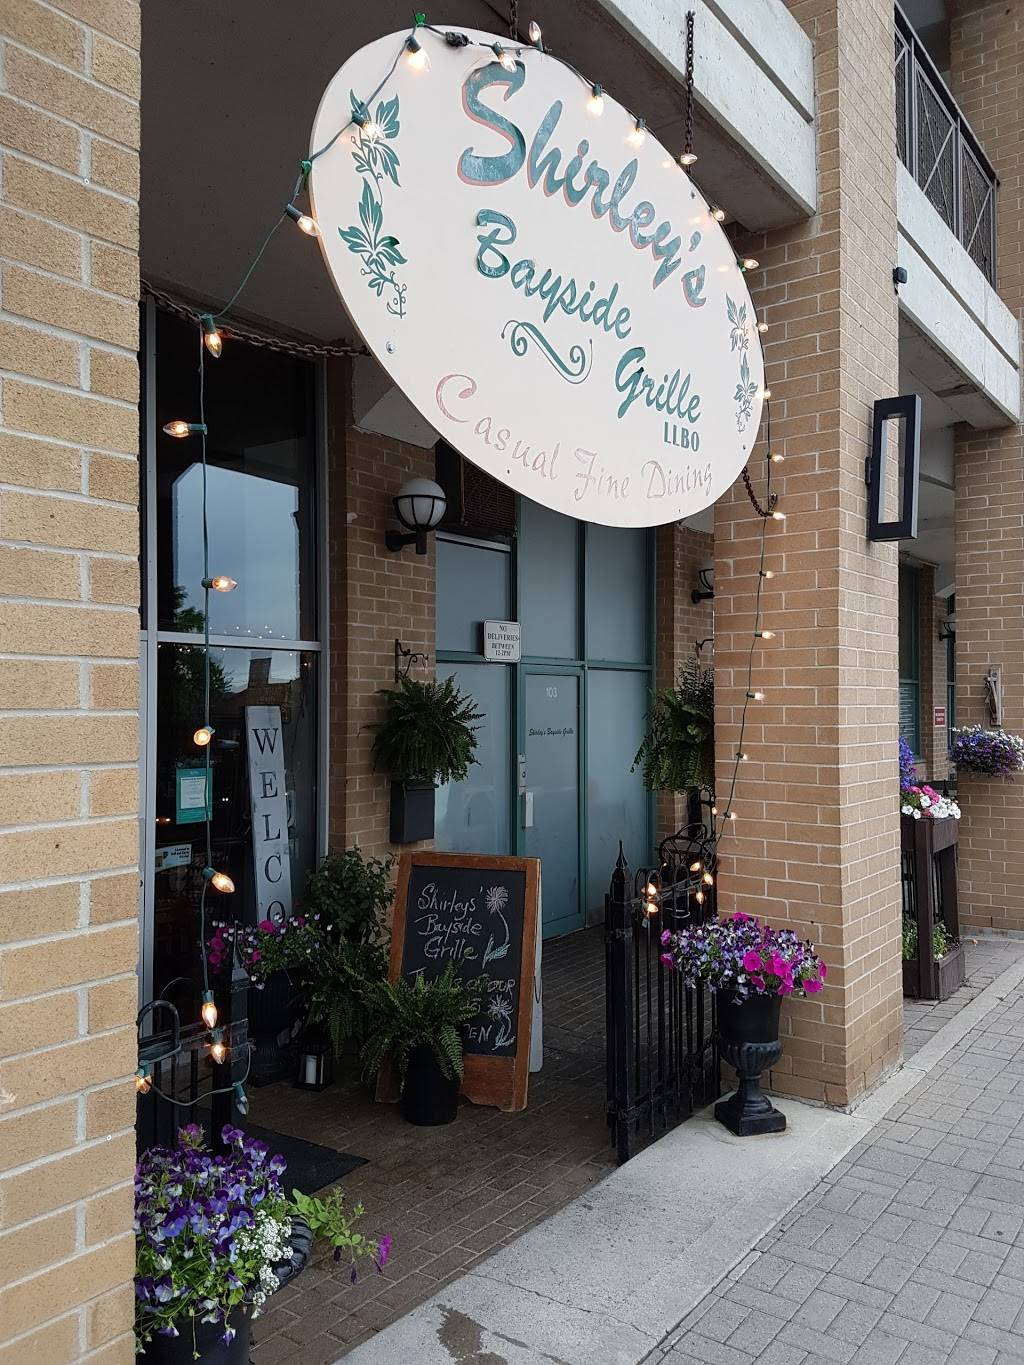 Shirleys Bayside Grille | restaurant | 150 Dunlop St E #102, Barrie, ON L4M 6H1, Canada | 7057350035 OR +1 705-735-0035